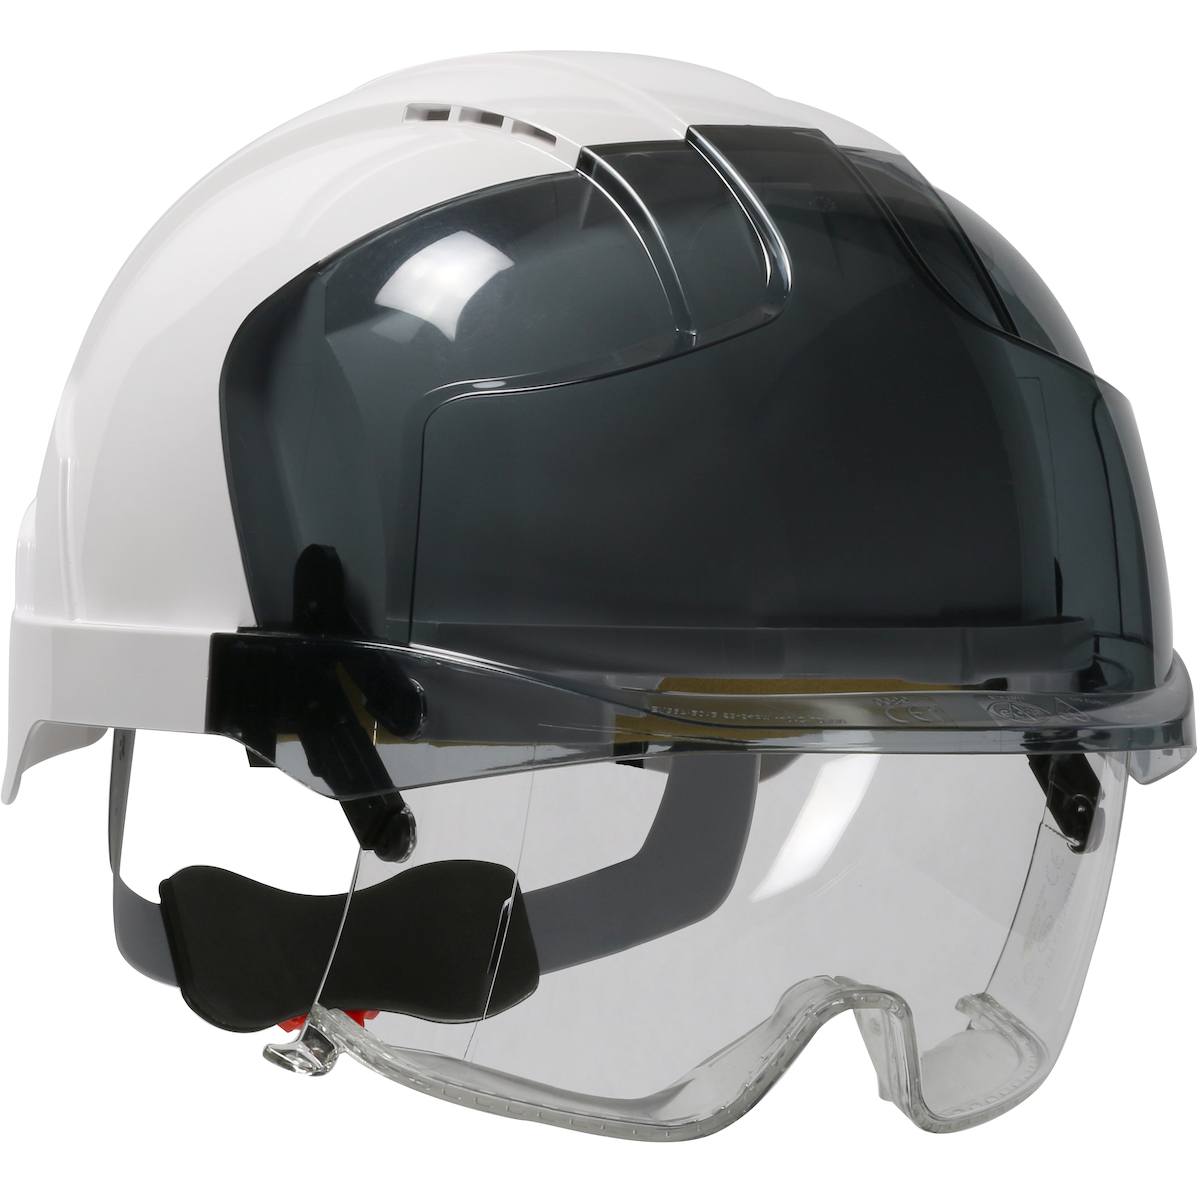 Type I, Vented Industrial Safety Helmet with Lightweight ABS Shell, Integrated ANSI Z87.1 Eye Protection, 6-Point Polyester Suspension and Wheel Ratchet Adjustment, White, OS